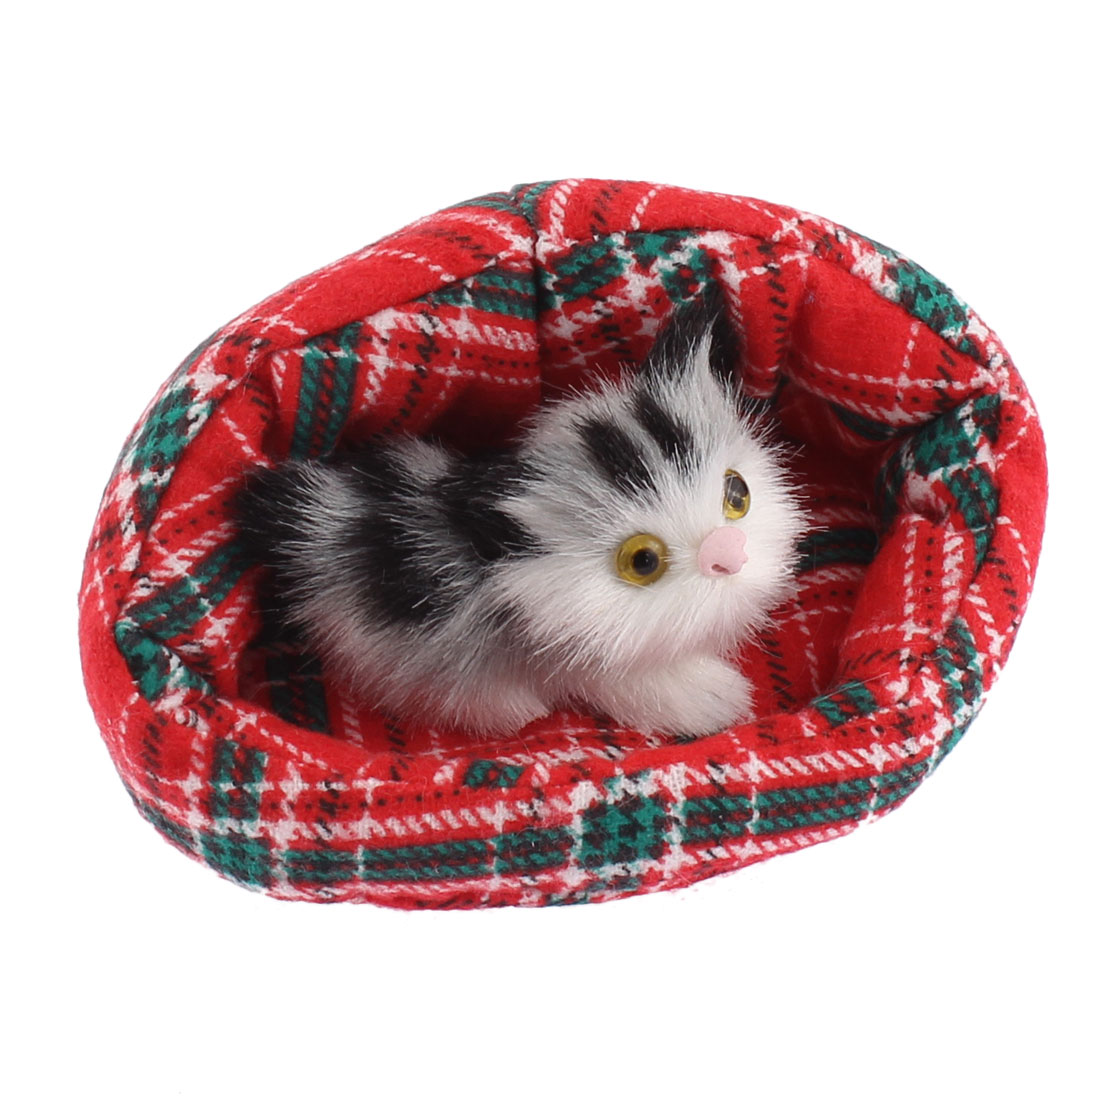 Home Decor Simulation Animal Sound Cat in Bed Red